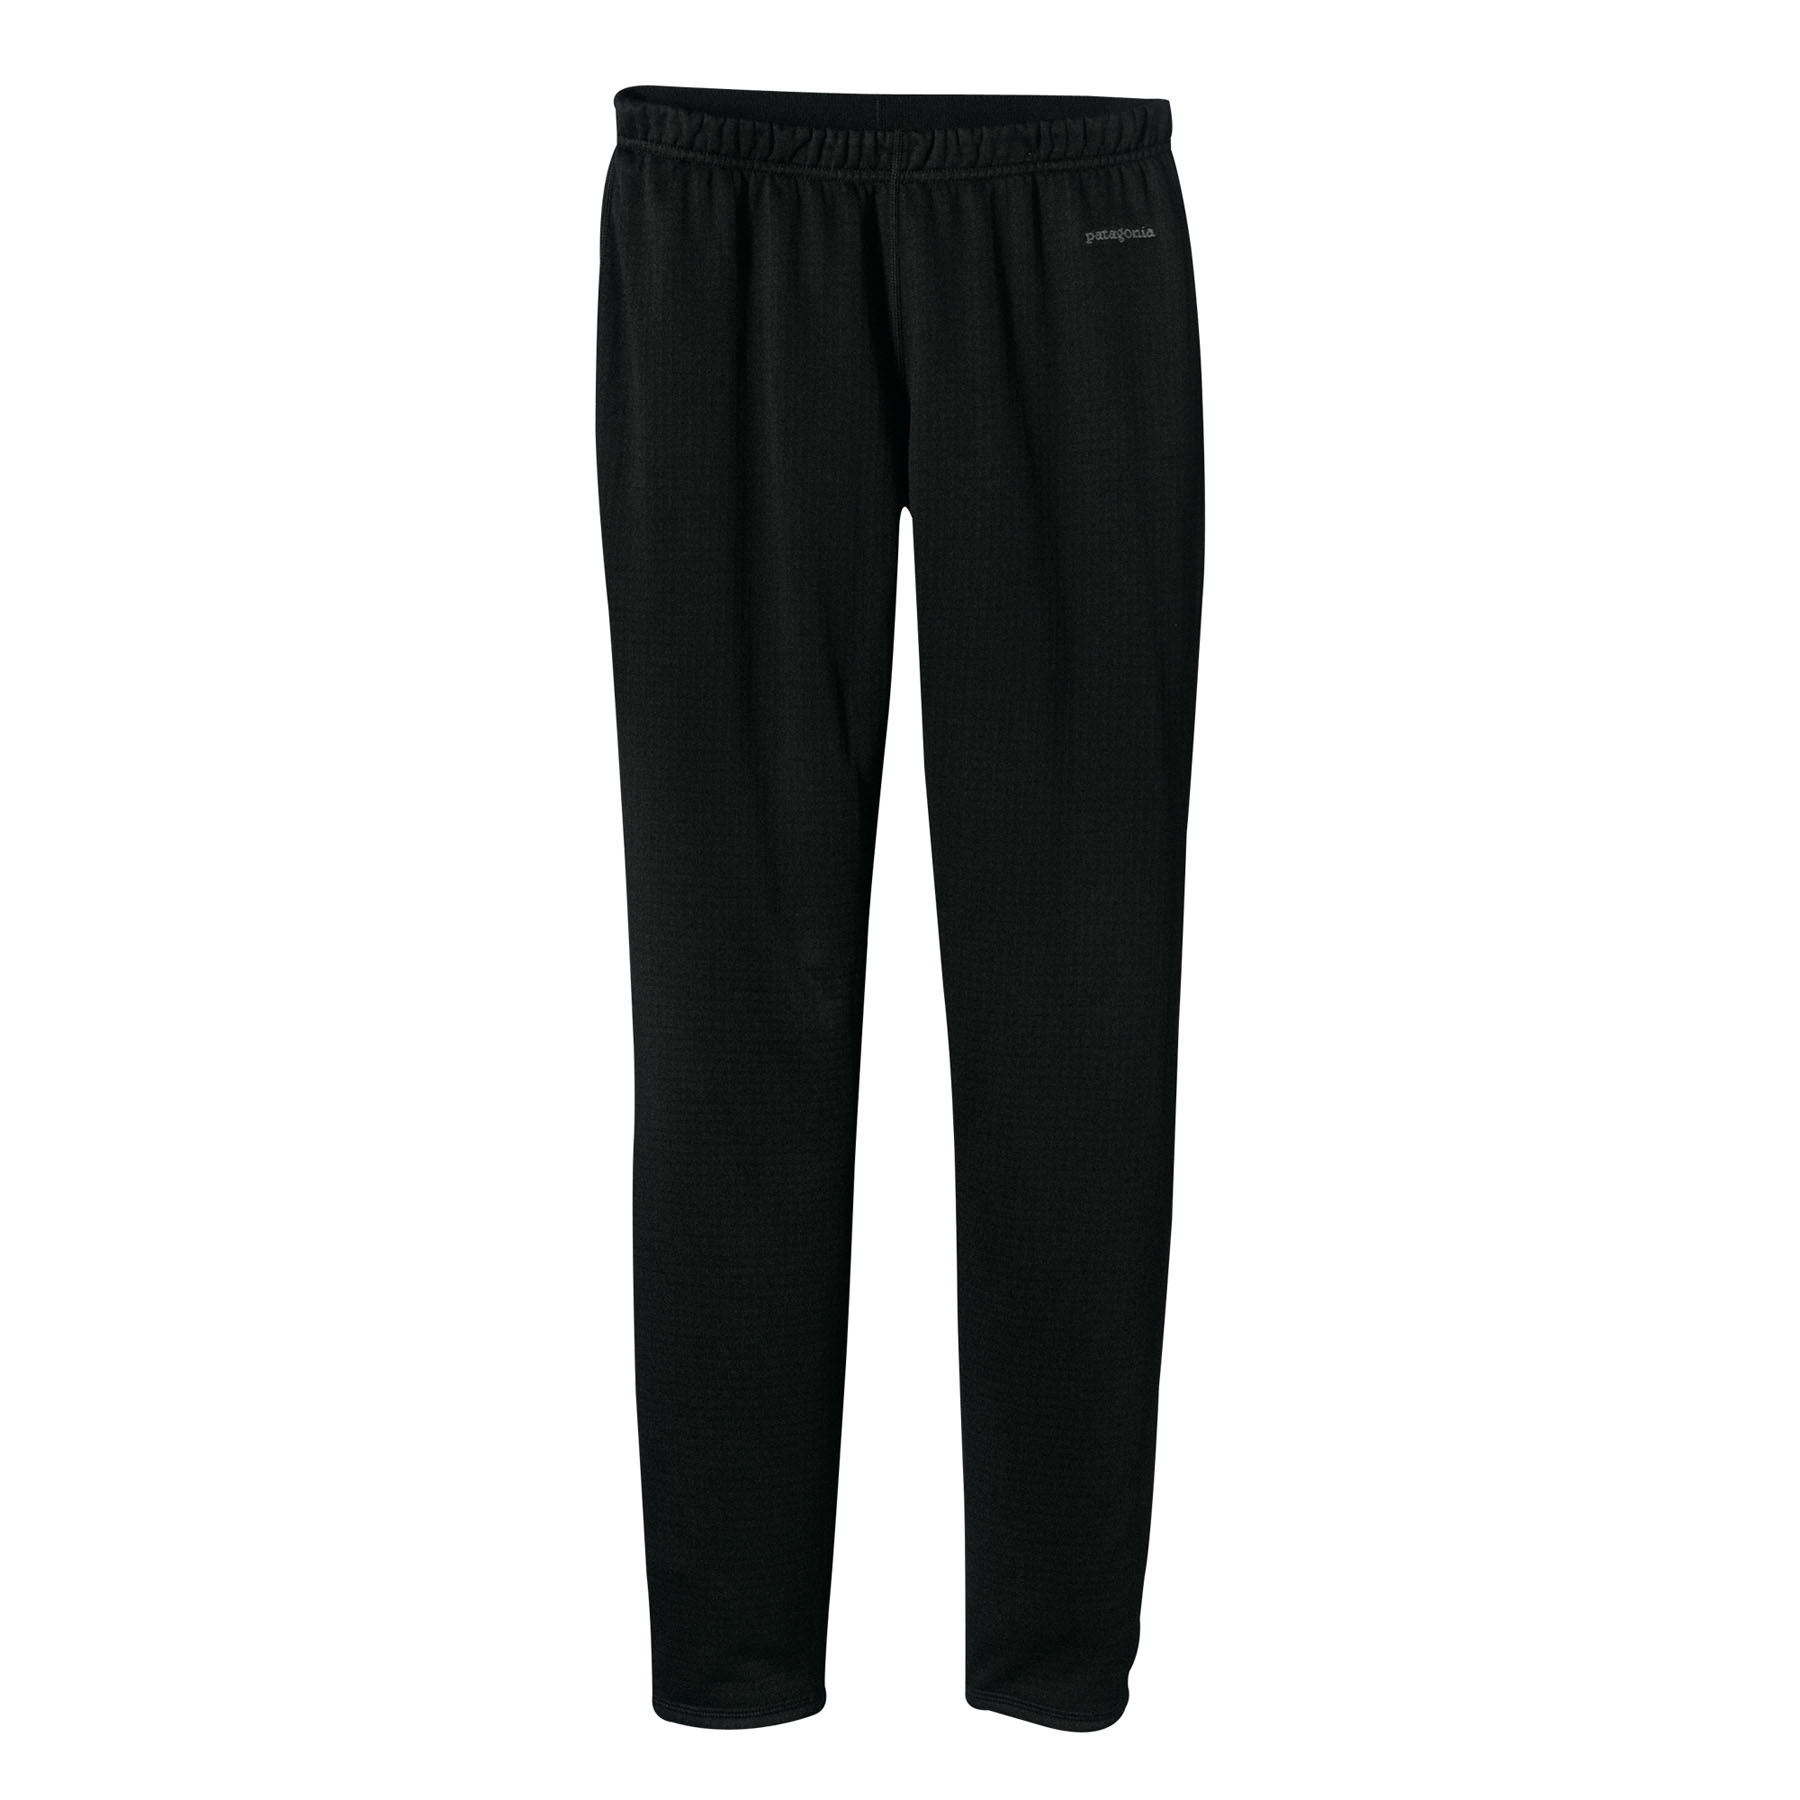 PATAGONIA W'S R1 PANTS (40214) - WAS $89